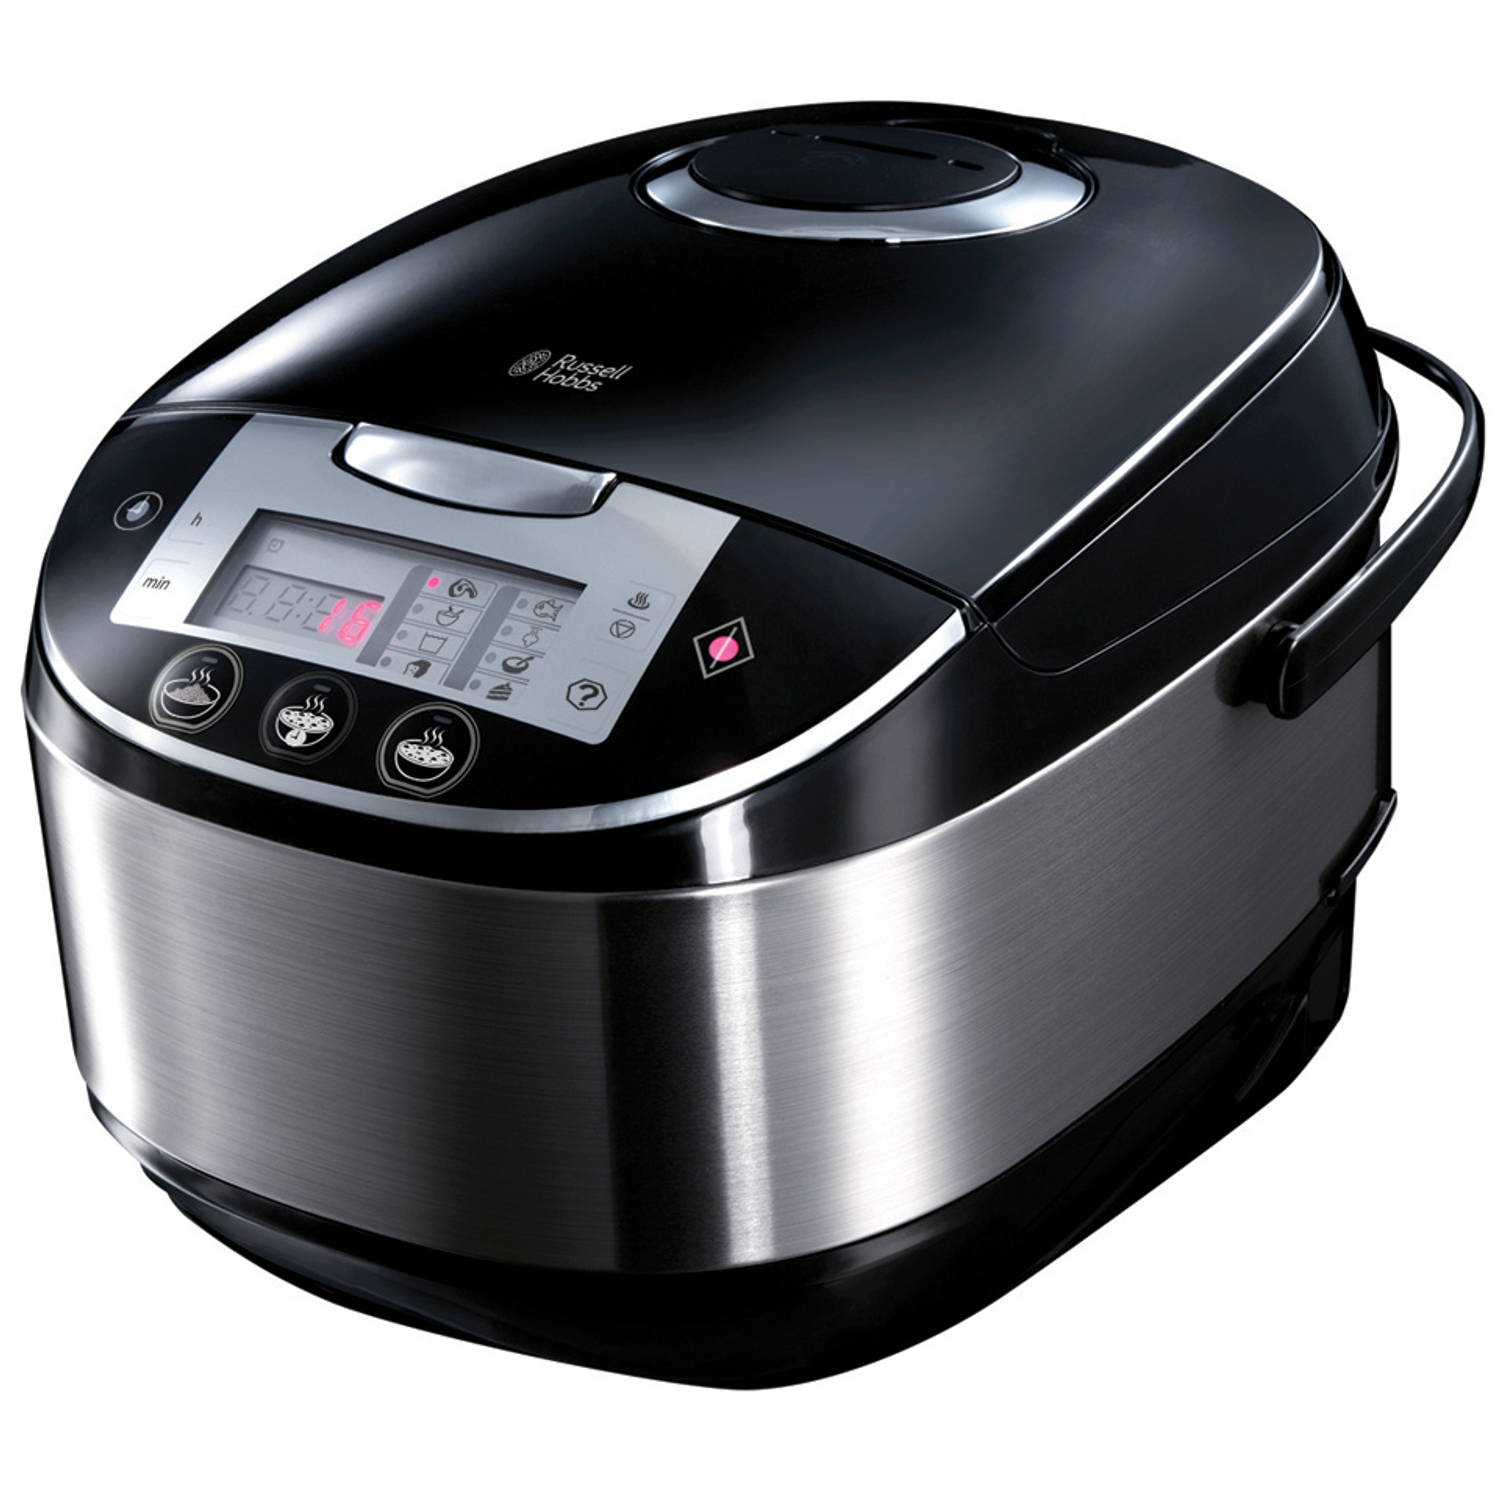 Korting Russell Hobbs multicooker Cook@Home 21850 56